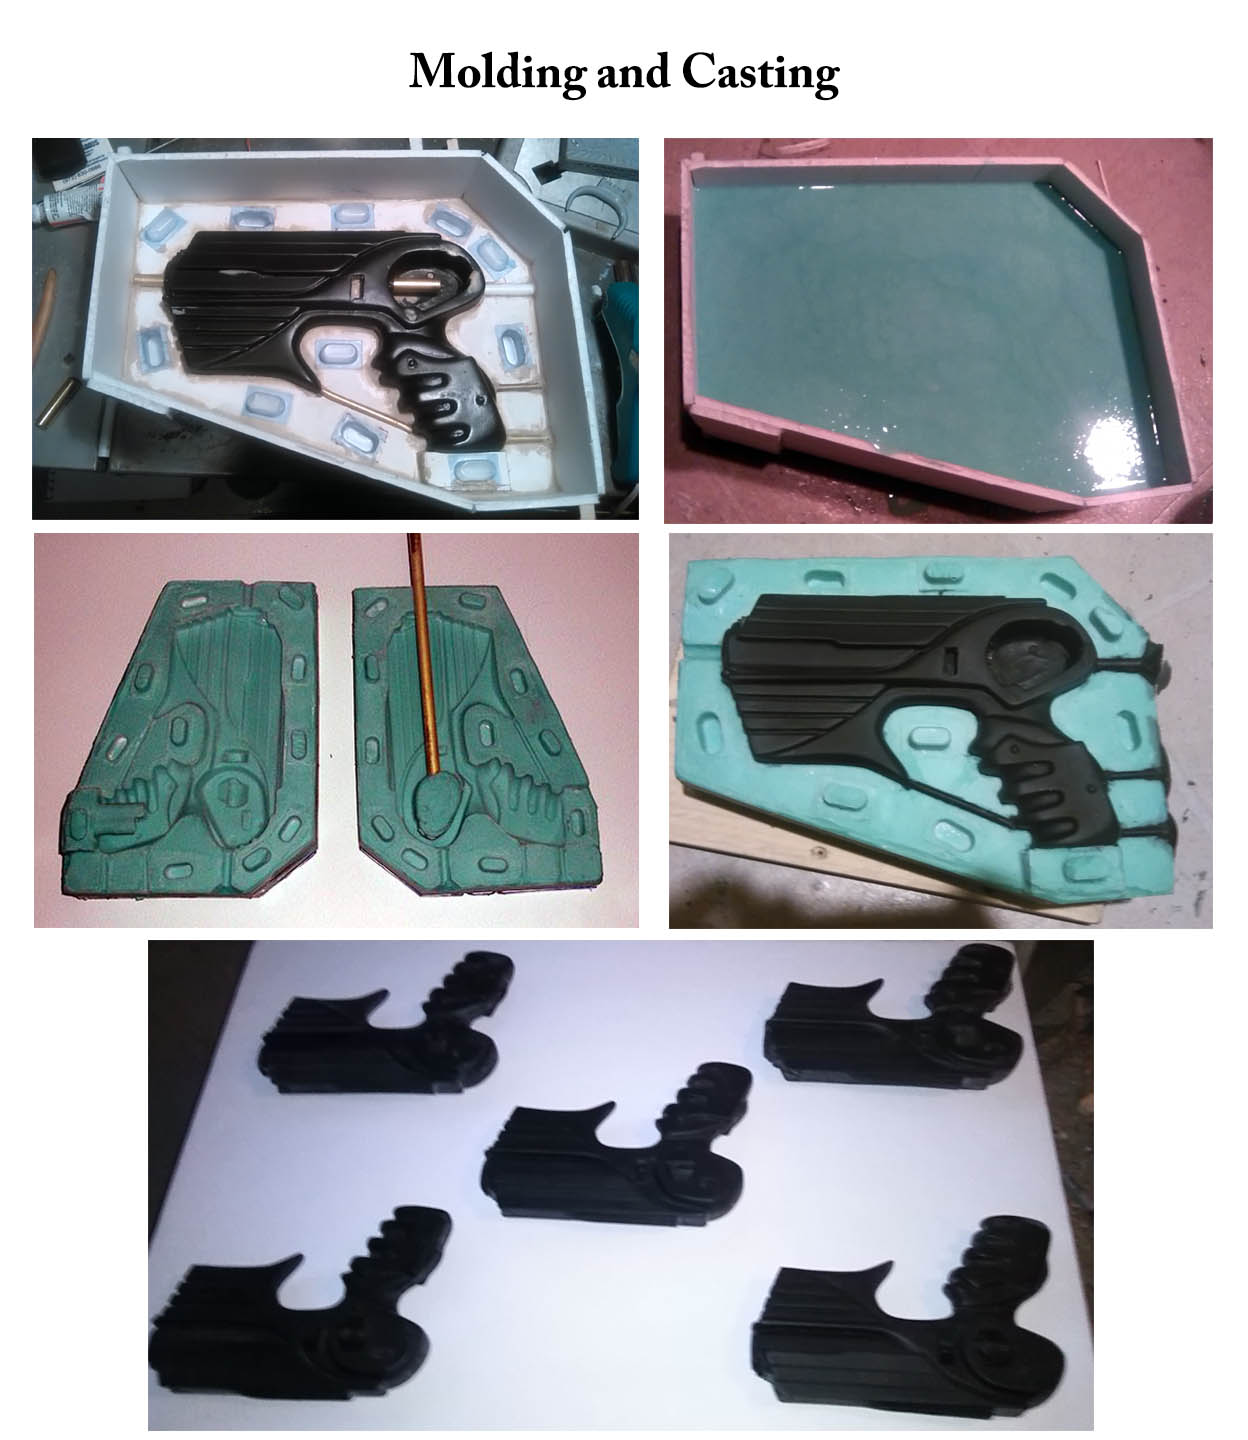 Molding and Casting.jpg